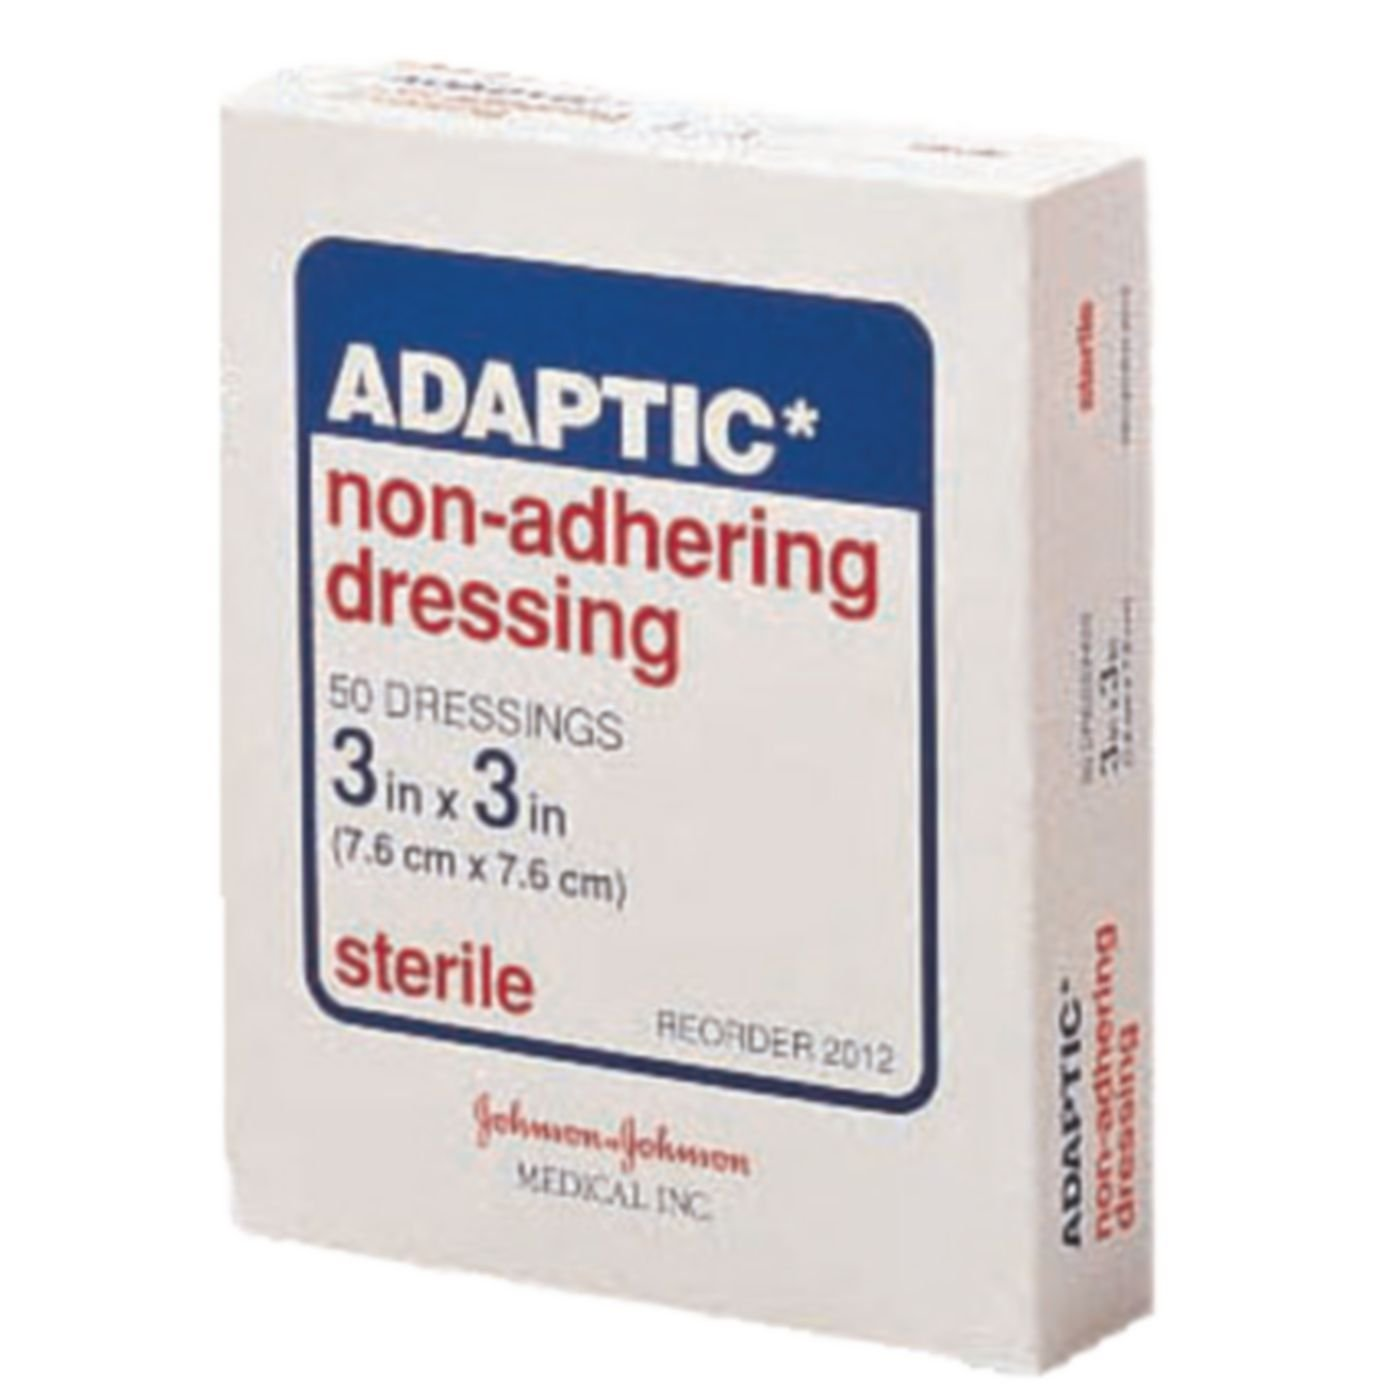 Physical Therapy Aids 081679968 J&J Adaptic Dressing, 3'' x 3'', 50/Pk by Physical Therapy Aids